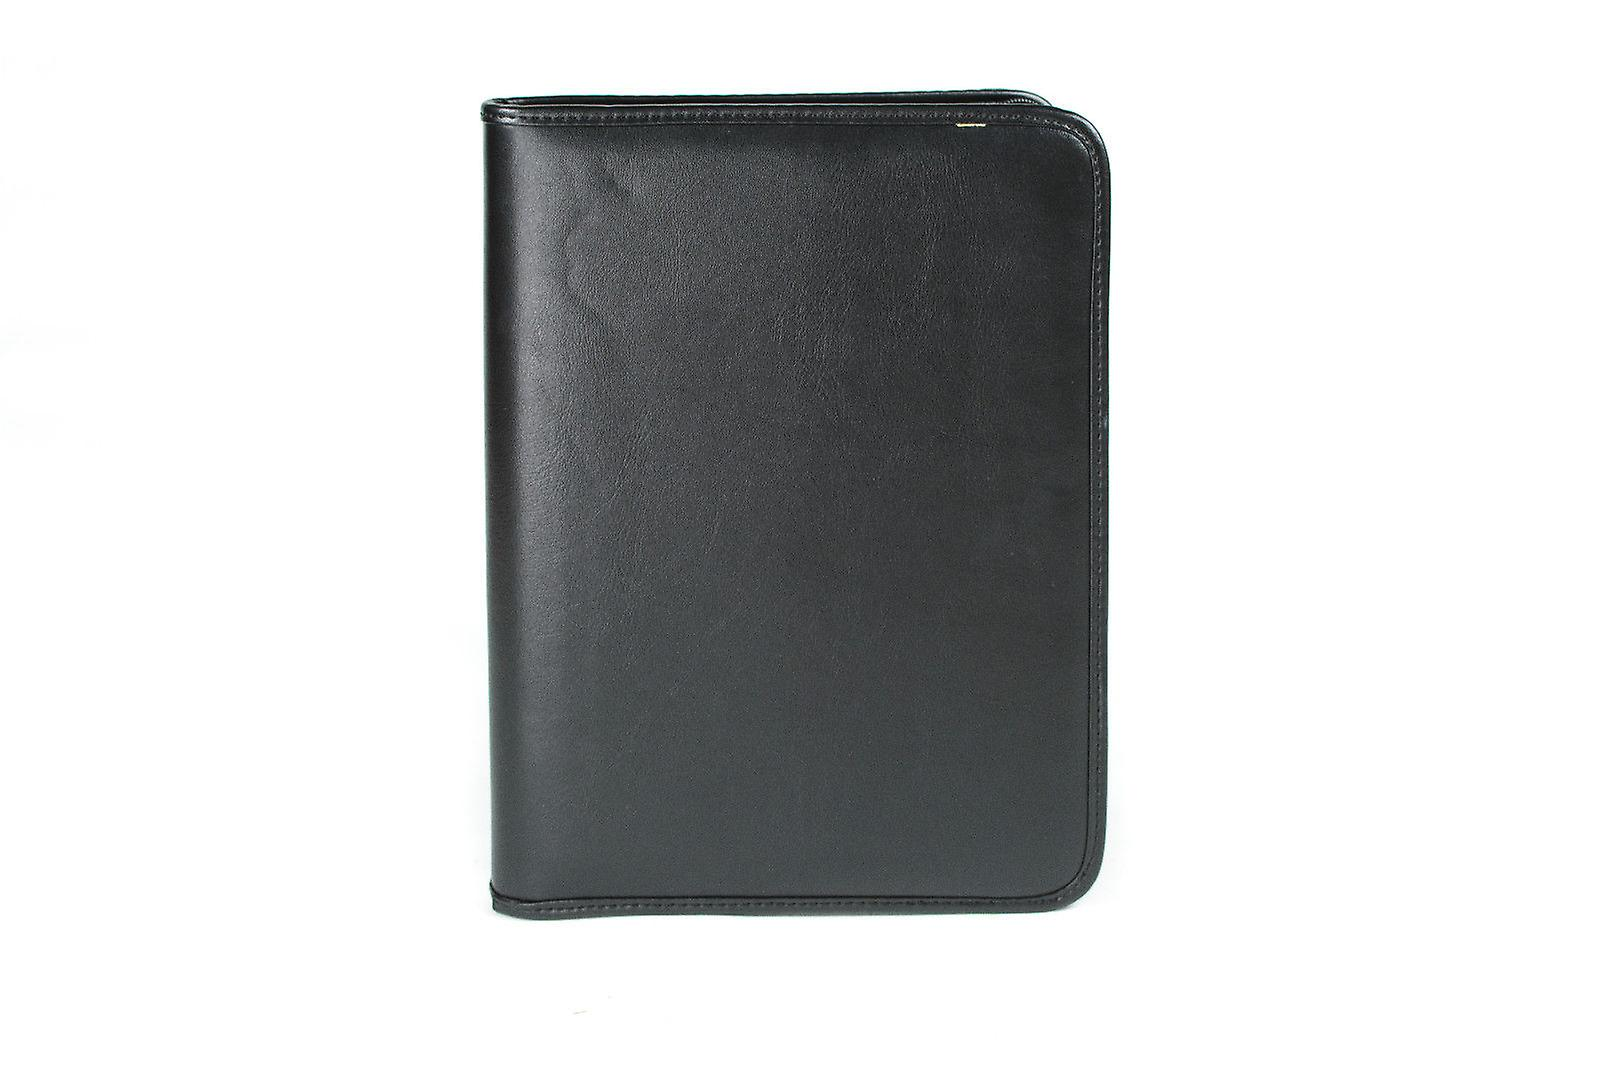 A4 Conference Folder Zipped Folio Case Pu Leather Business Organiser Ring Binder